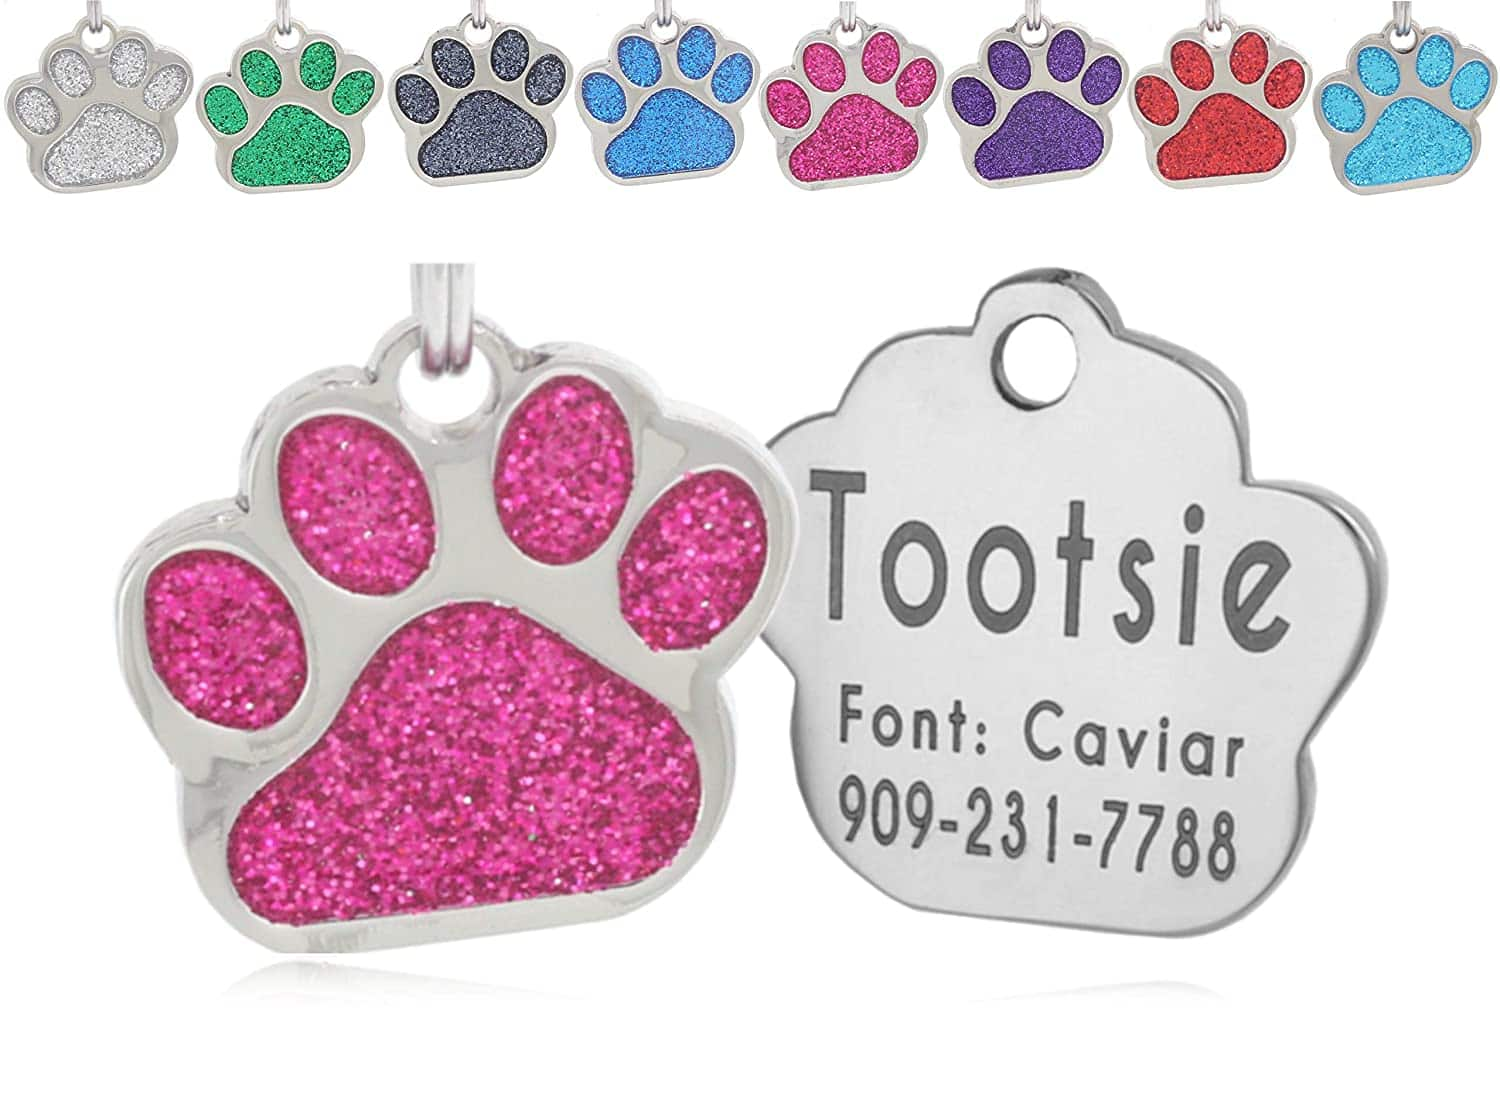 io tags Pet ID Tags, Personalized Dog Tags and Cat Tags, Custom Engraved, Easy to Read, Cute Glitter Paw Pet Tag $3 + Free Shipping